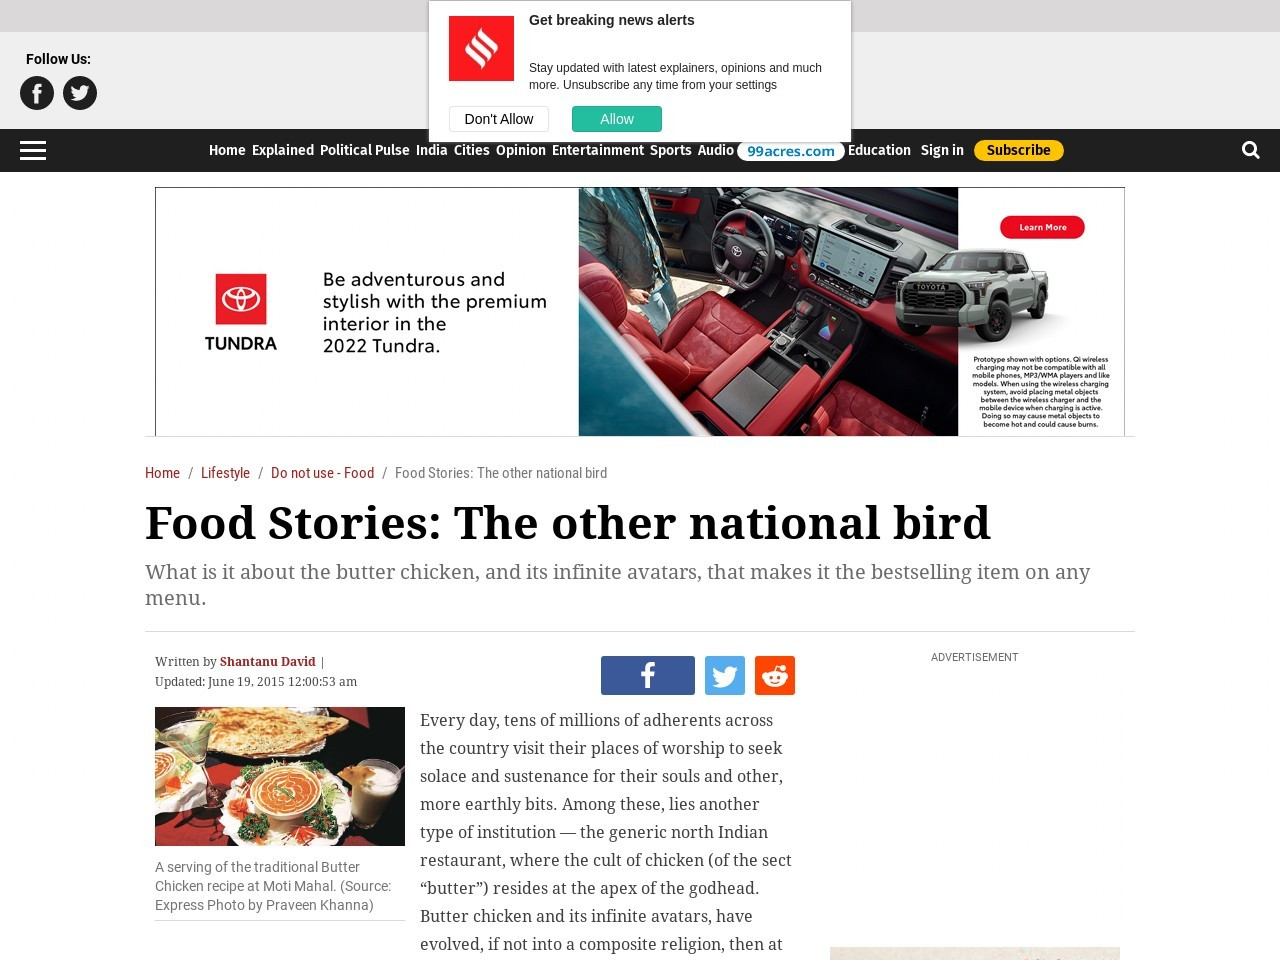 Food Stories: The other national bird